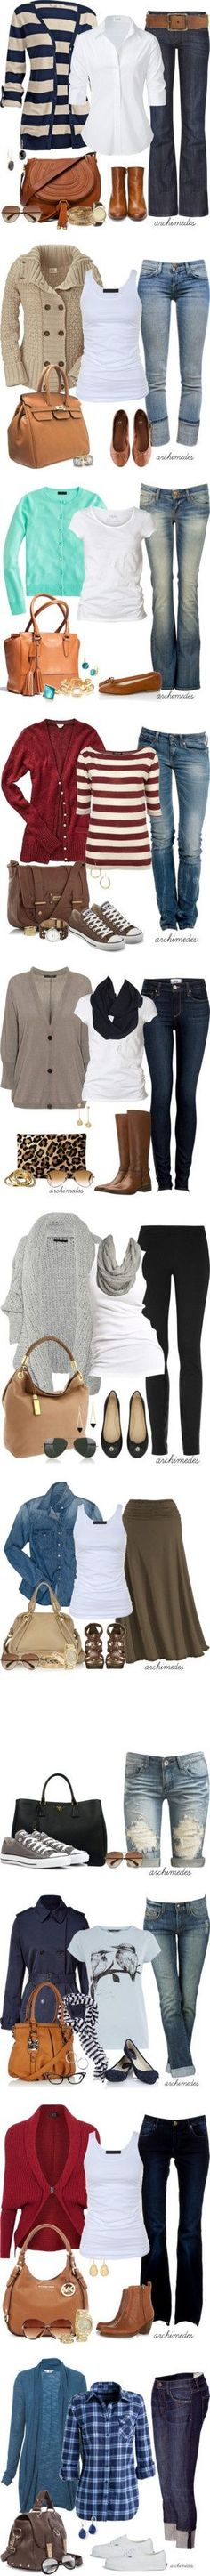 Fall wardrobe. Cozy comfy!